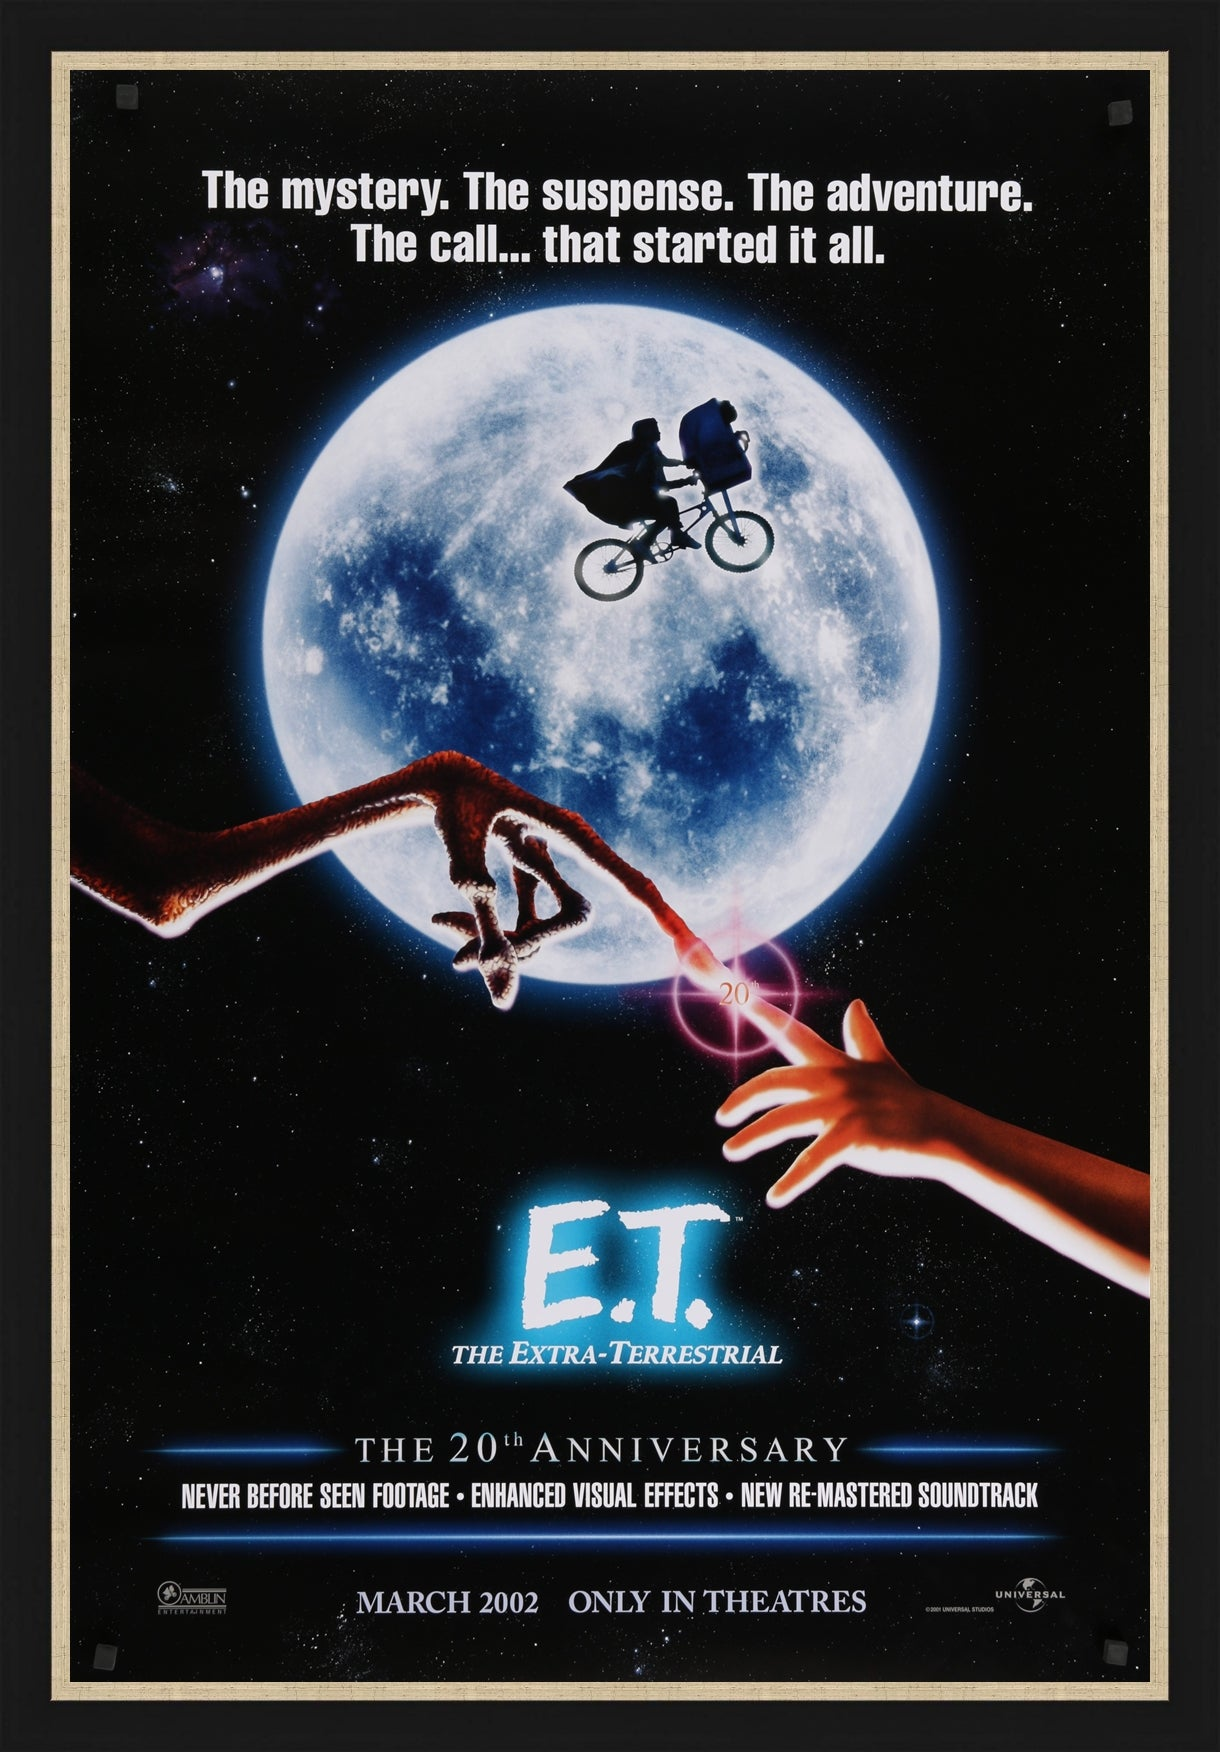 An original movie poster for E.T. The Extra Terrestrial